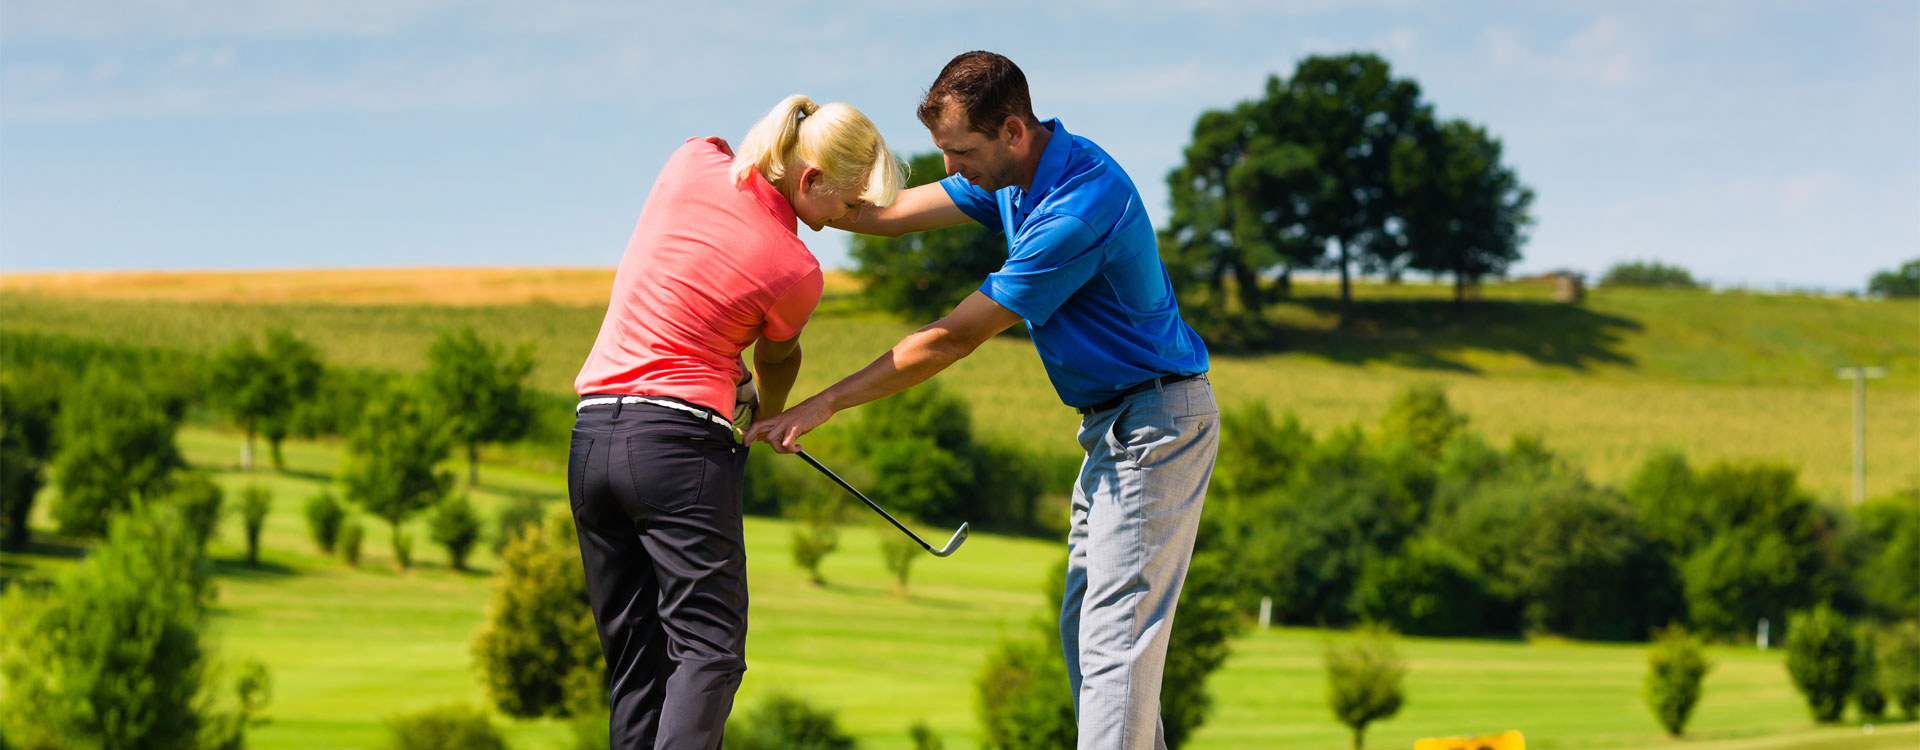 swagtail-flexible-golfer-learning-banner